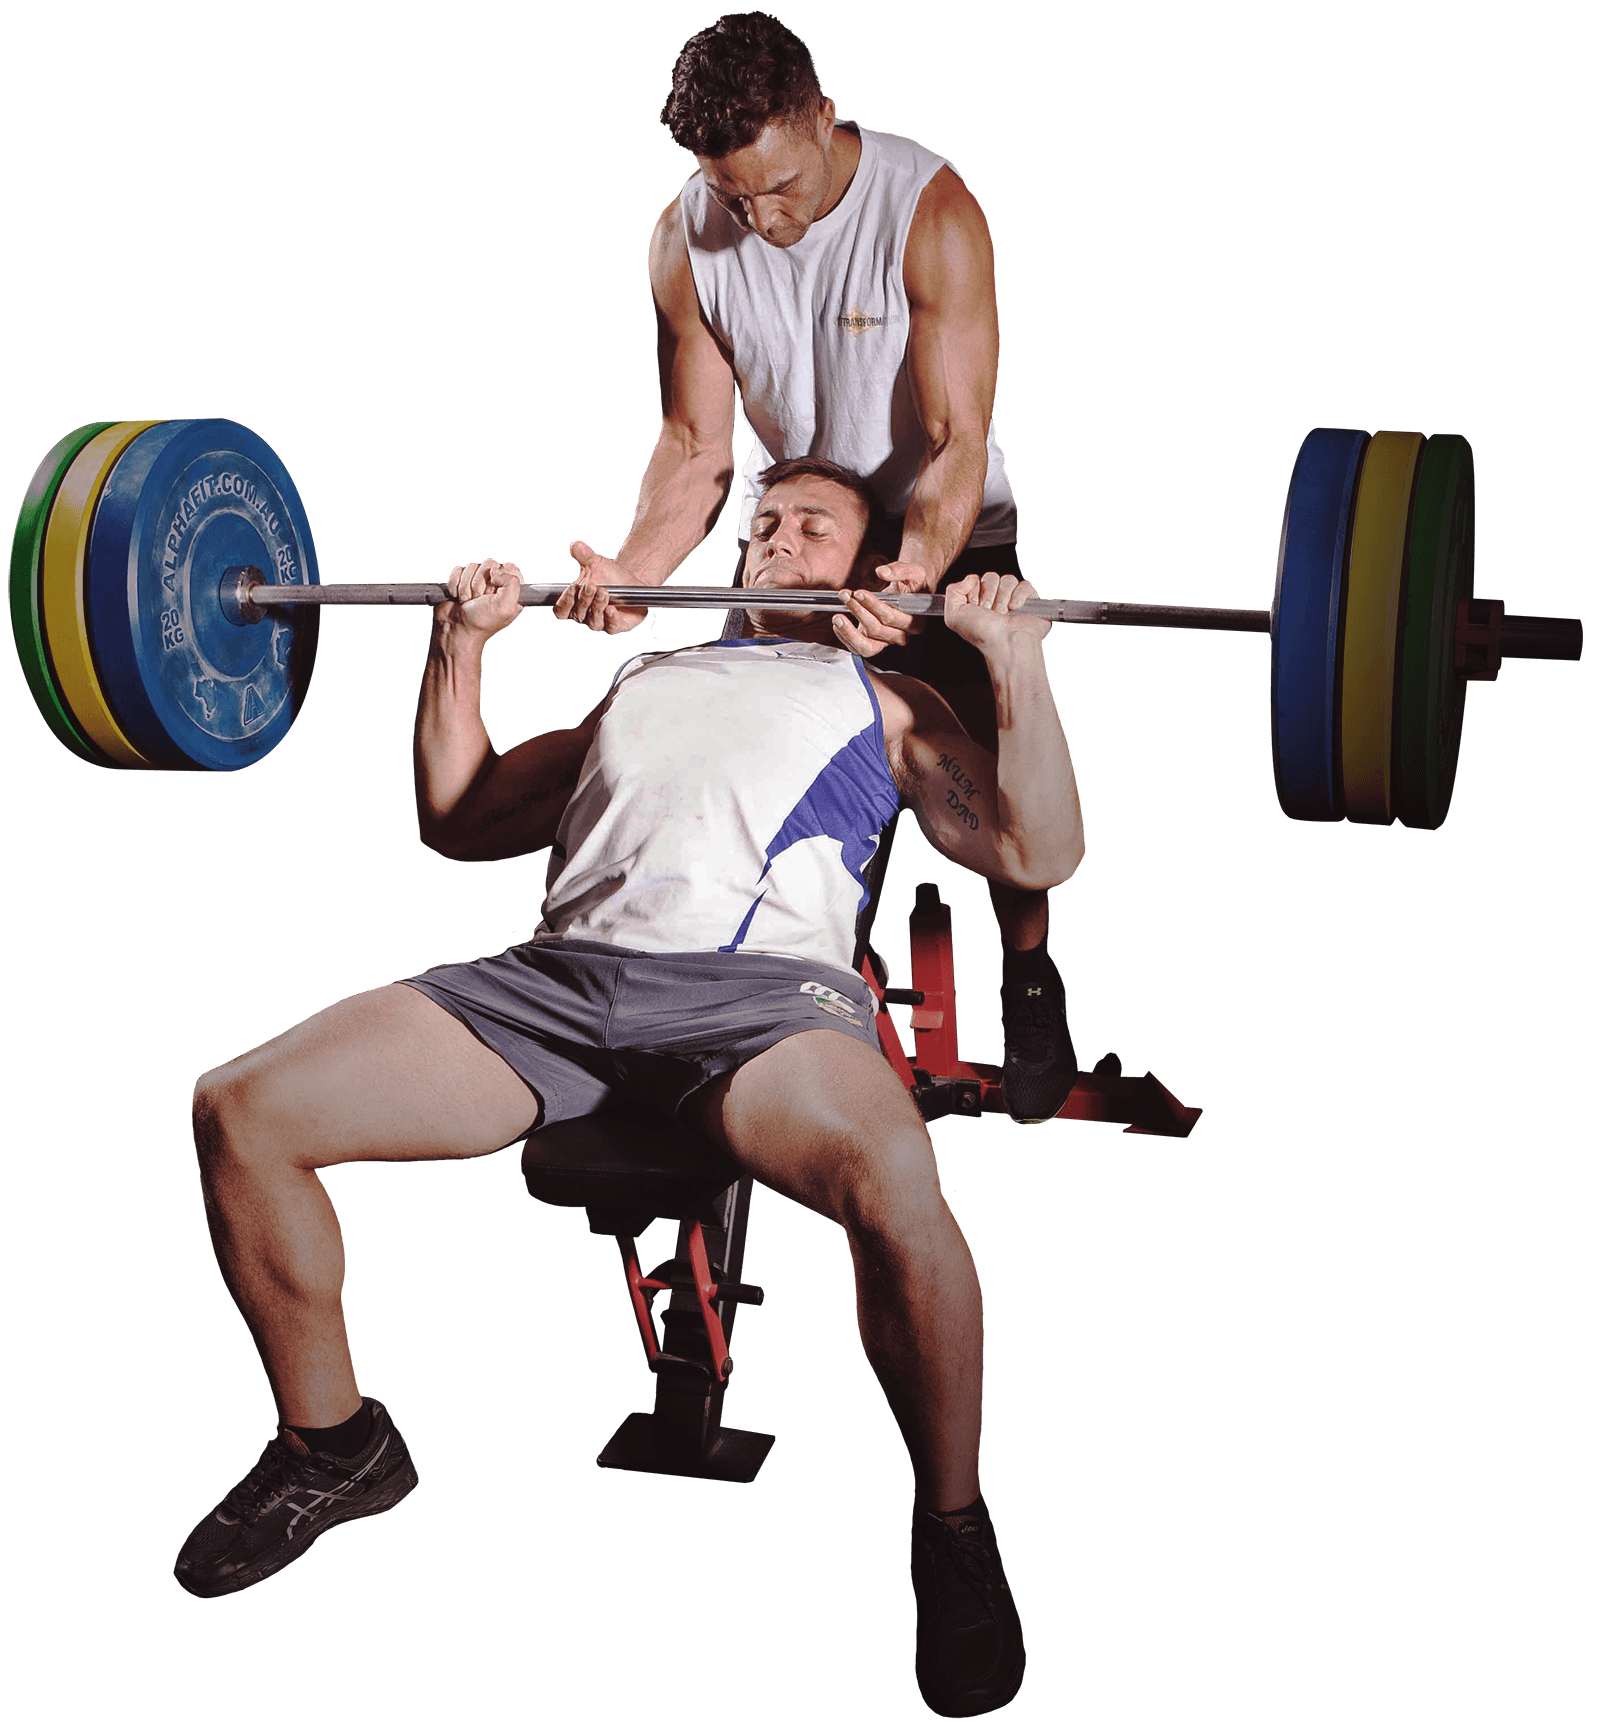 male athlete bench pressing with spotter friend